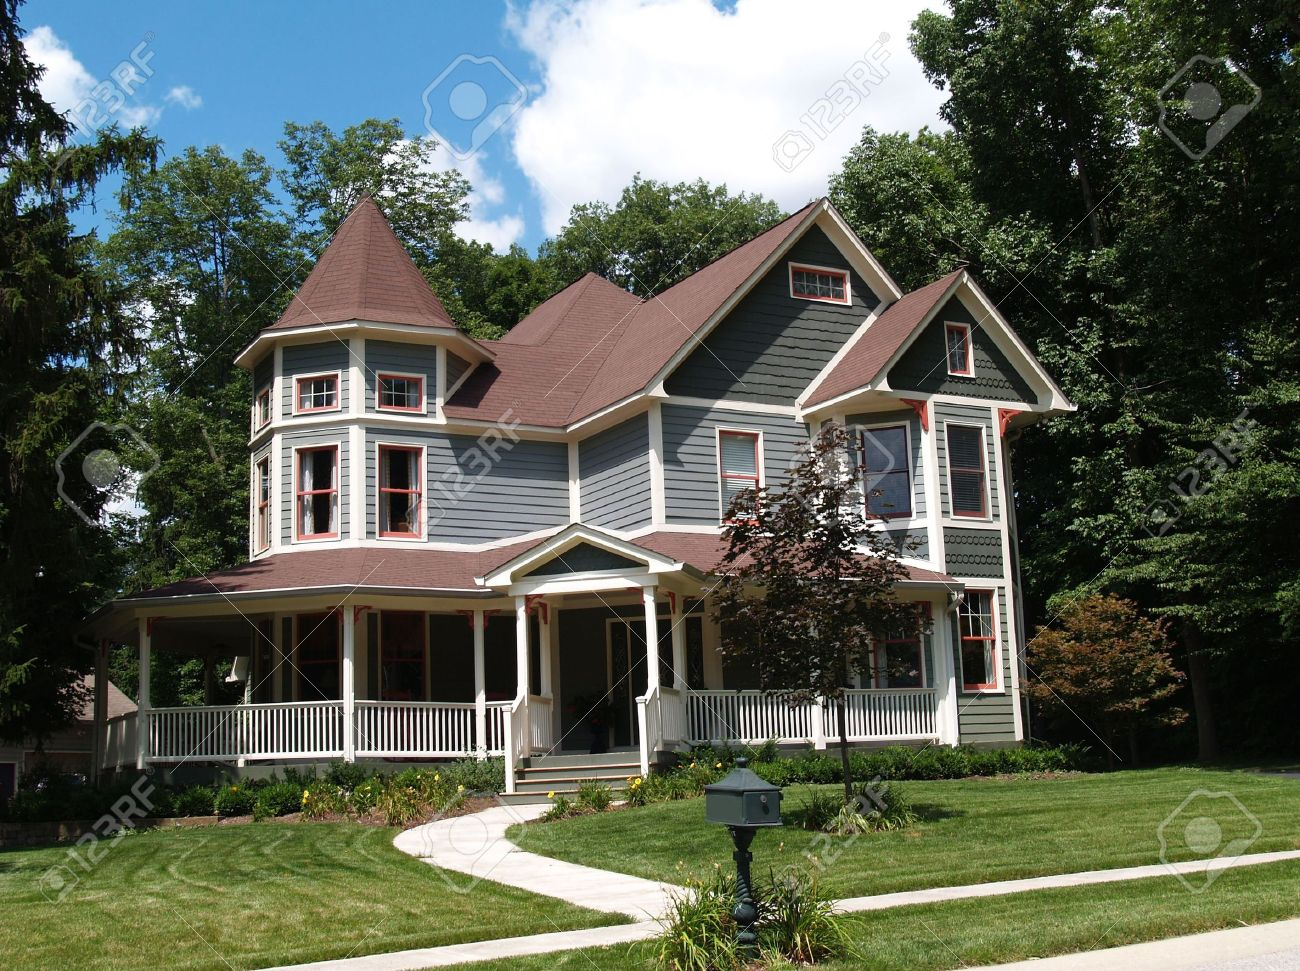 New two story Victorian residential home with vinyl or board siding on the facade styled after an old-fashioned historical house with bay windows, gingerbread and a turret. - 5520112